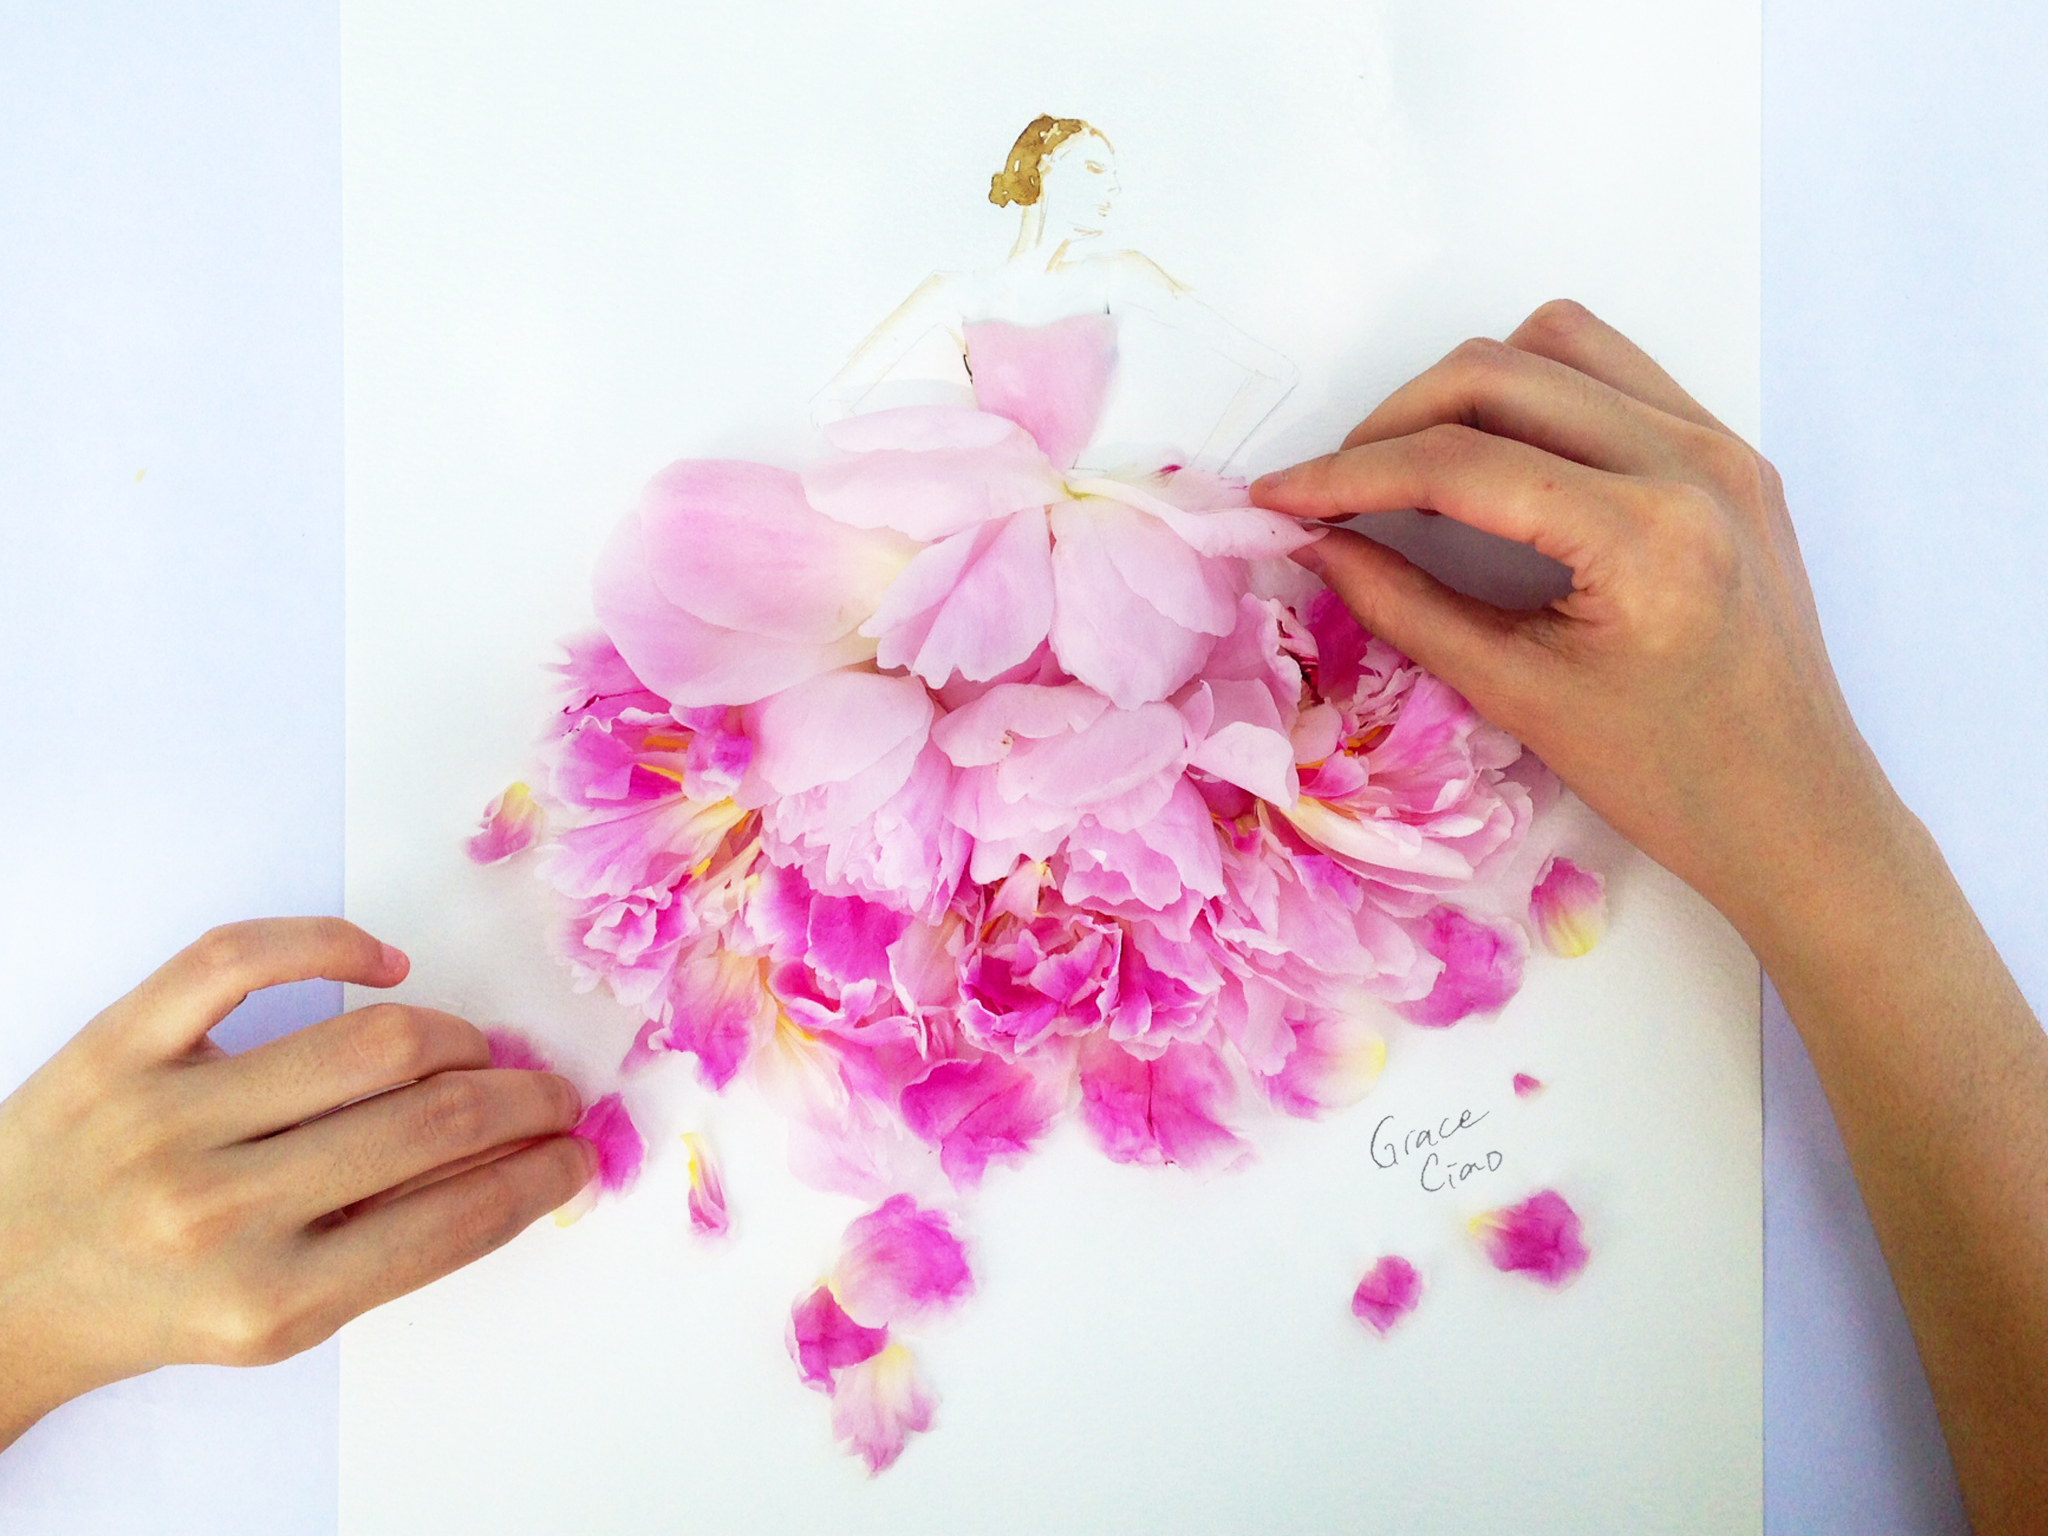 Floral Couture in Progress.  Photo Credits:  HappyPhotoPeople